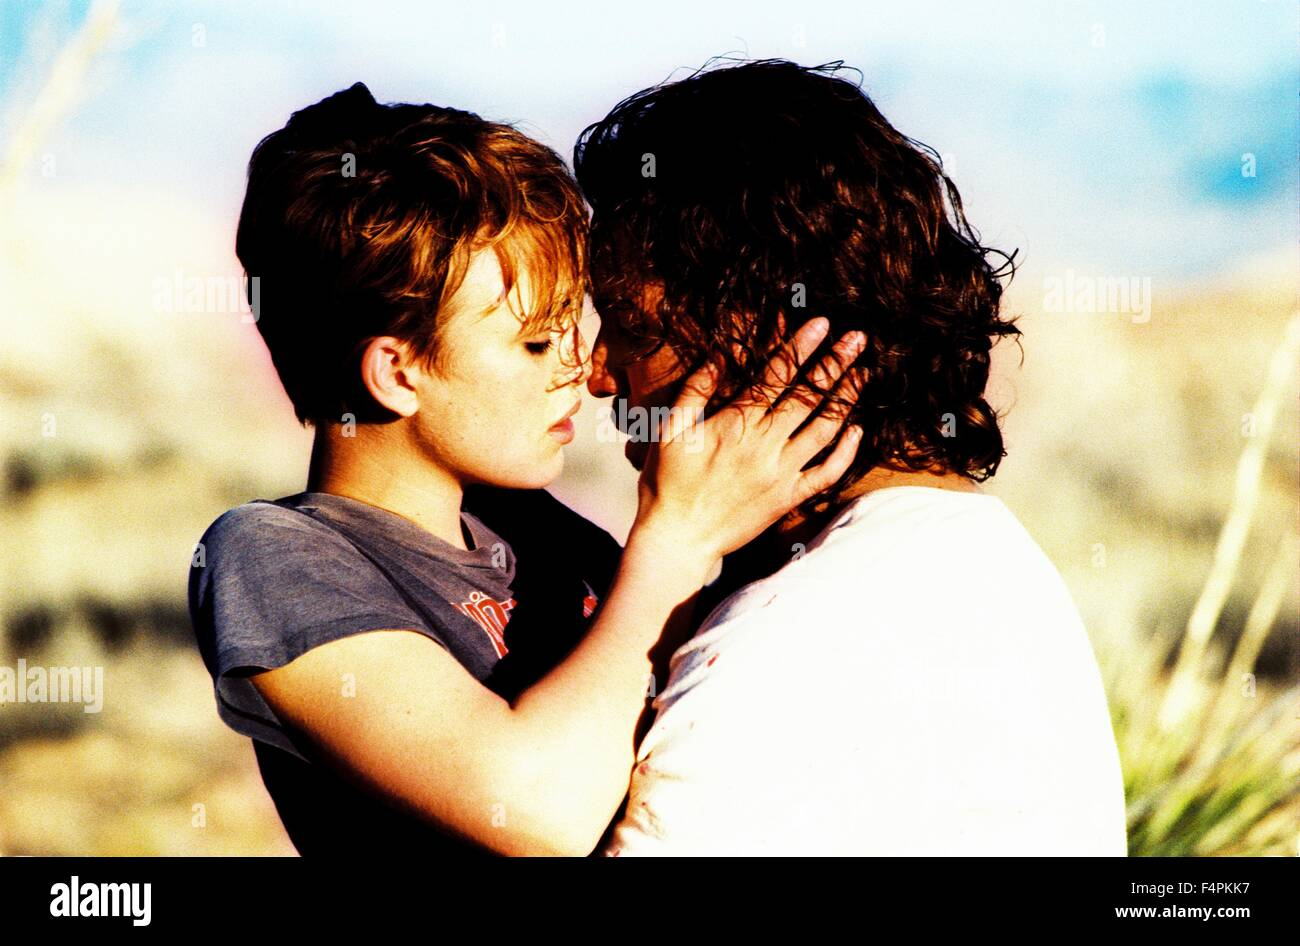 Keira Knightley and Edgar Ramirez / Domino / 2005 directed by Tony Scott [New Line Cinema] - Stock Image